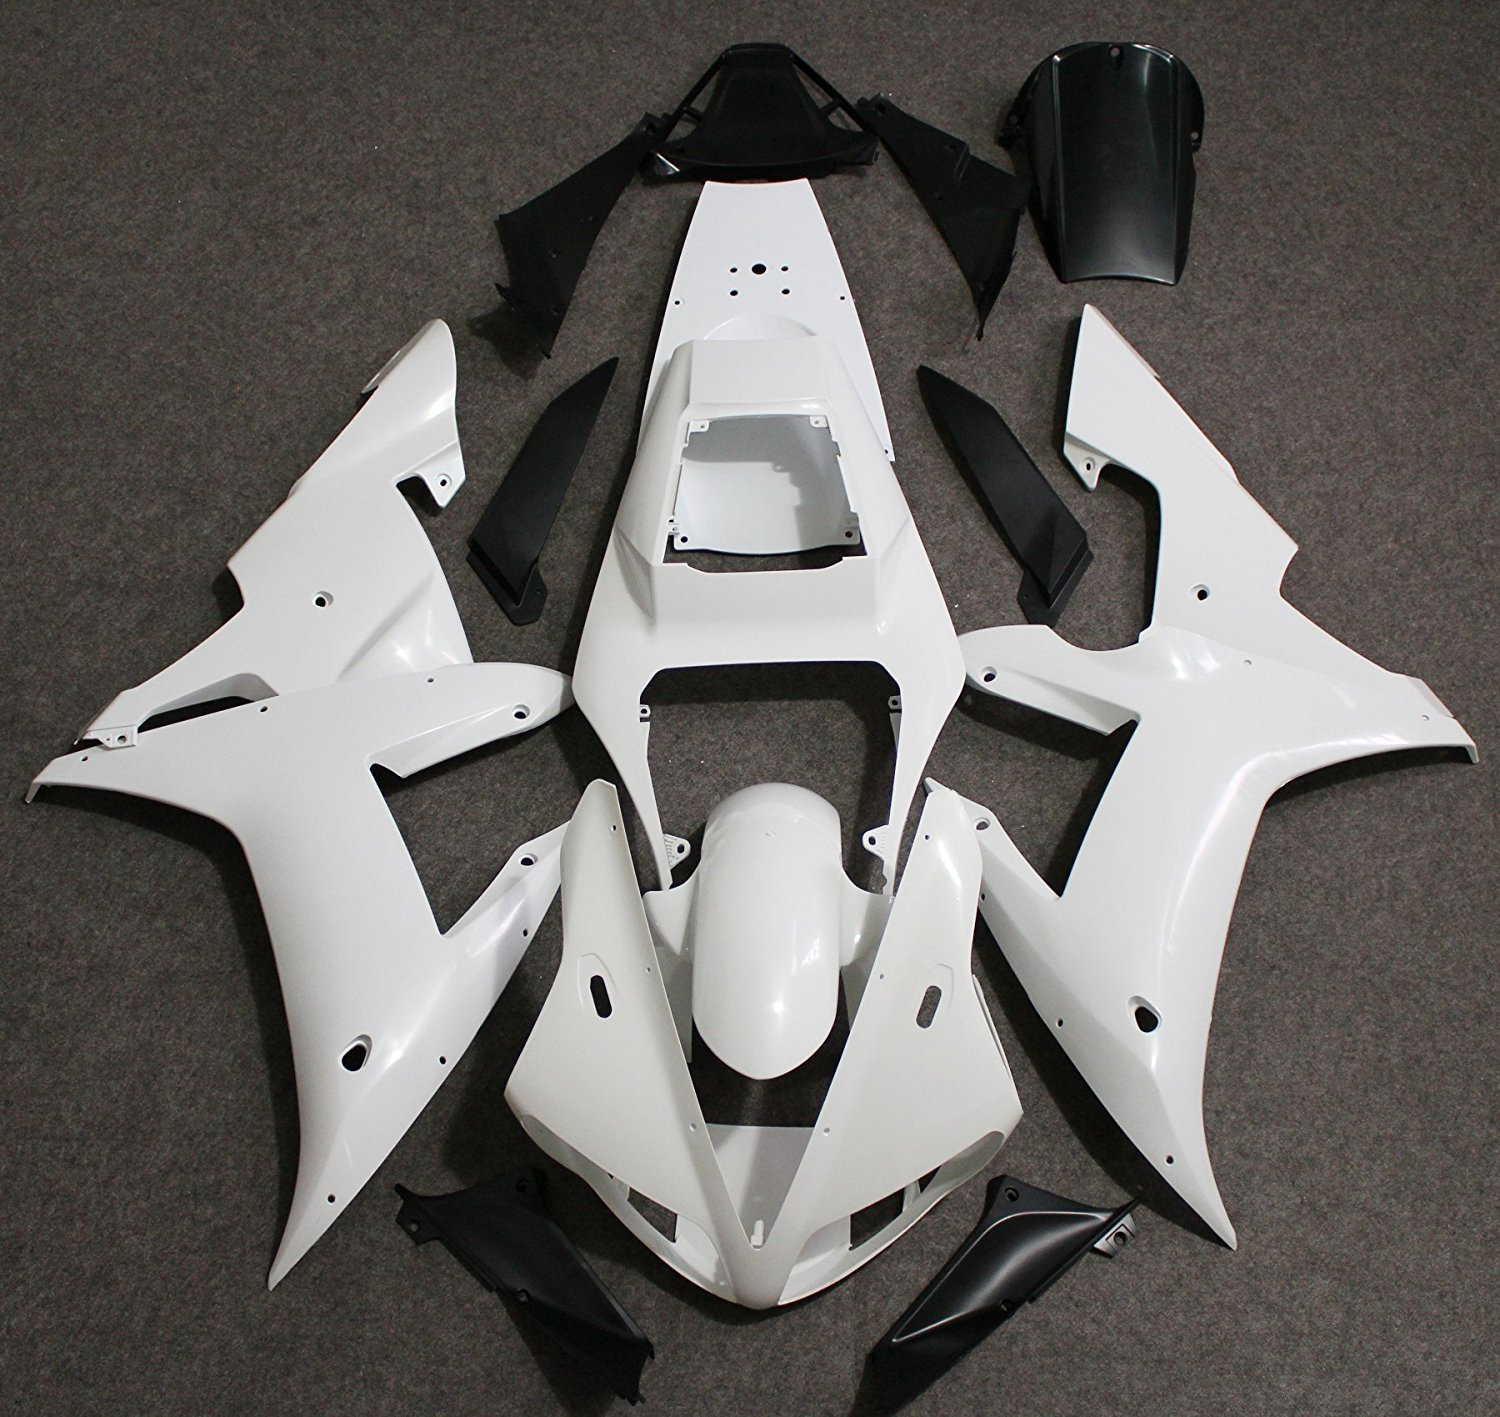 Motorcycle Full Fairing Kit Bodywork For Yamaha R1 YZF YZFR1 2002 - 2003 YZF-R1 02 03 Unpainted Fairings Injection Molding